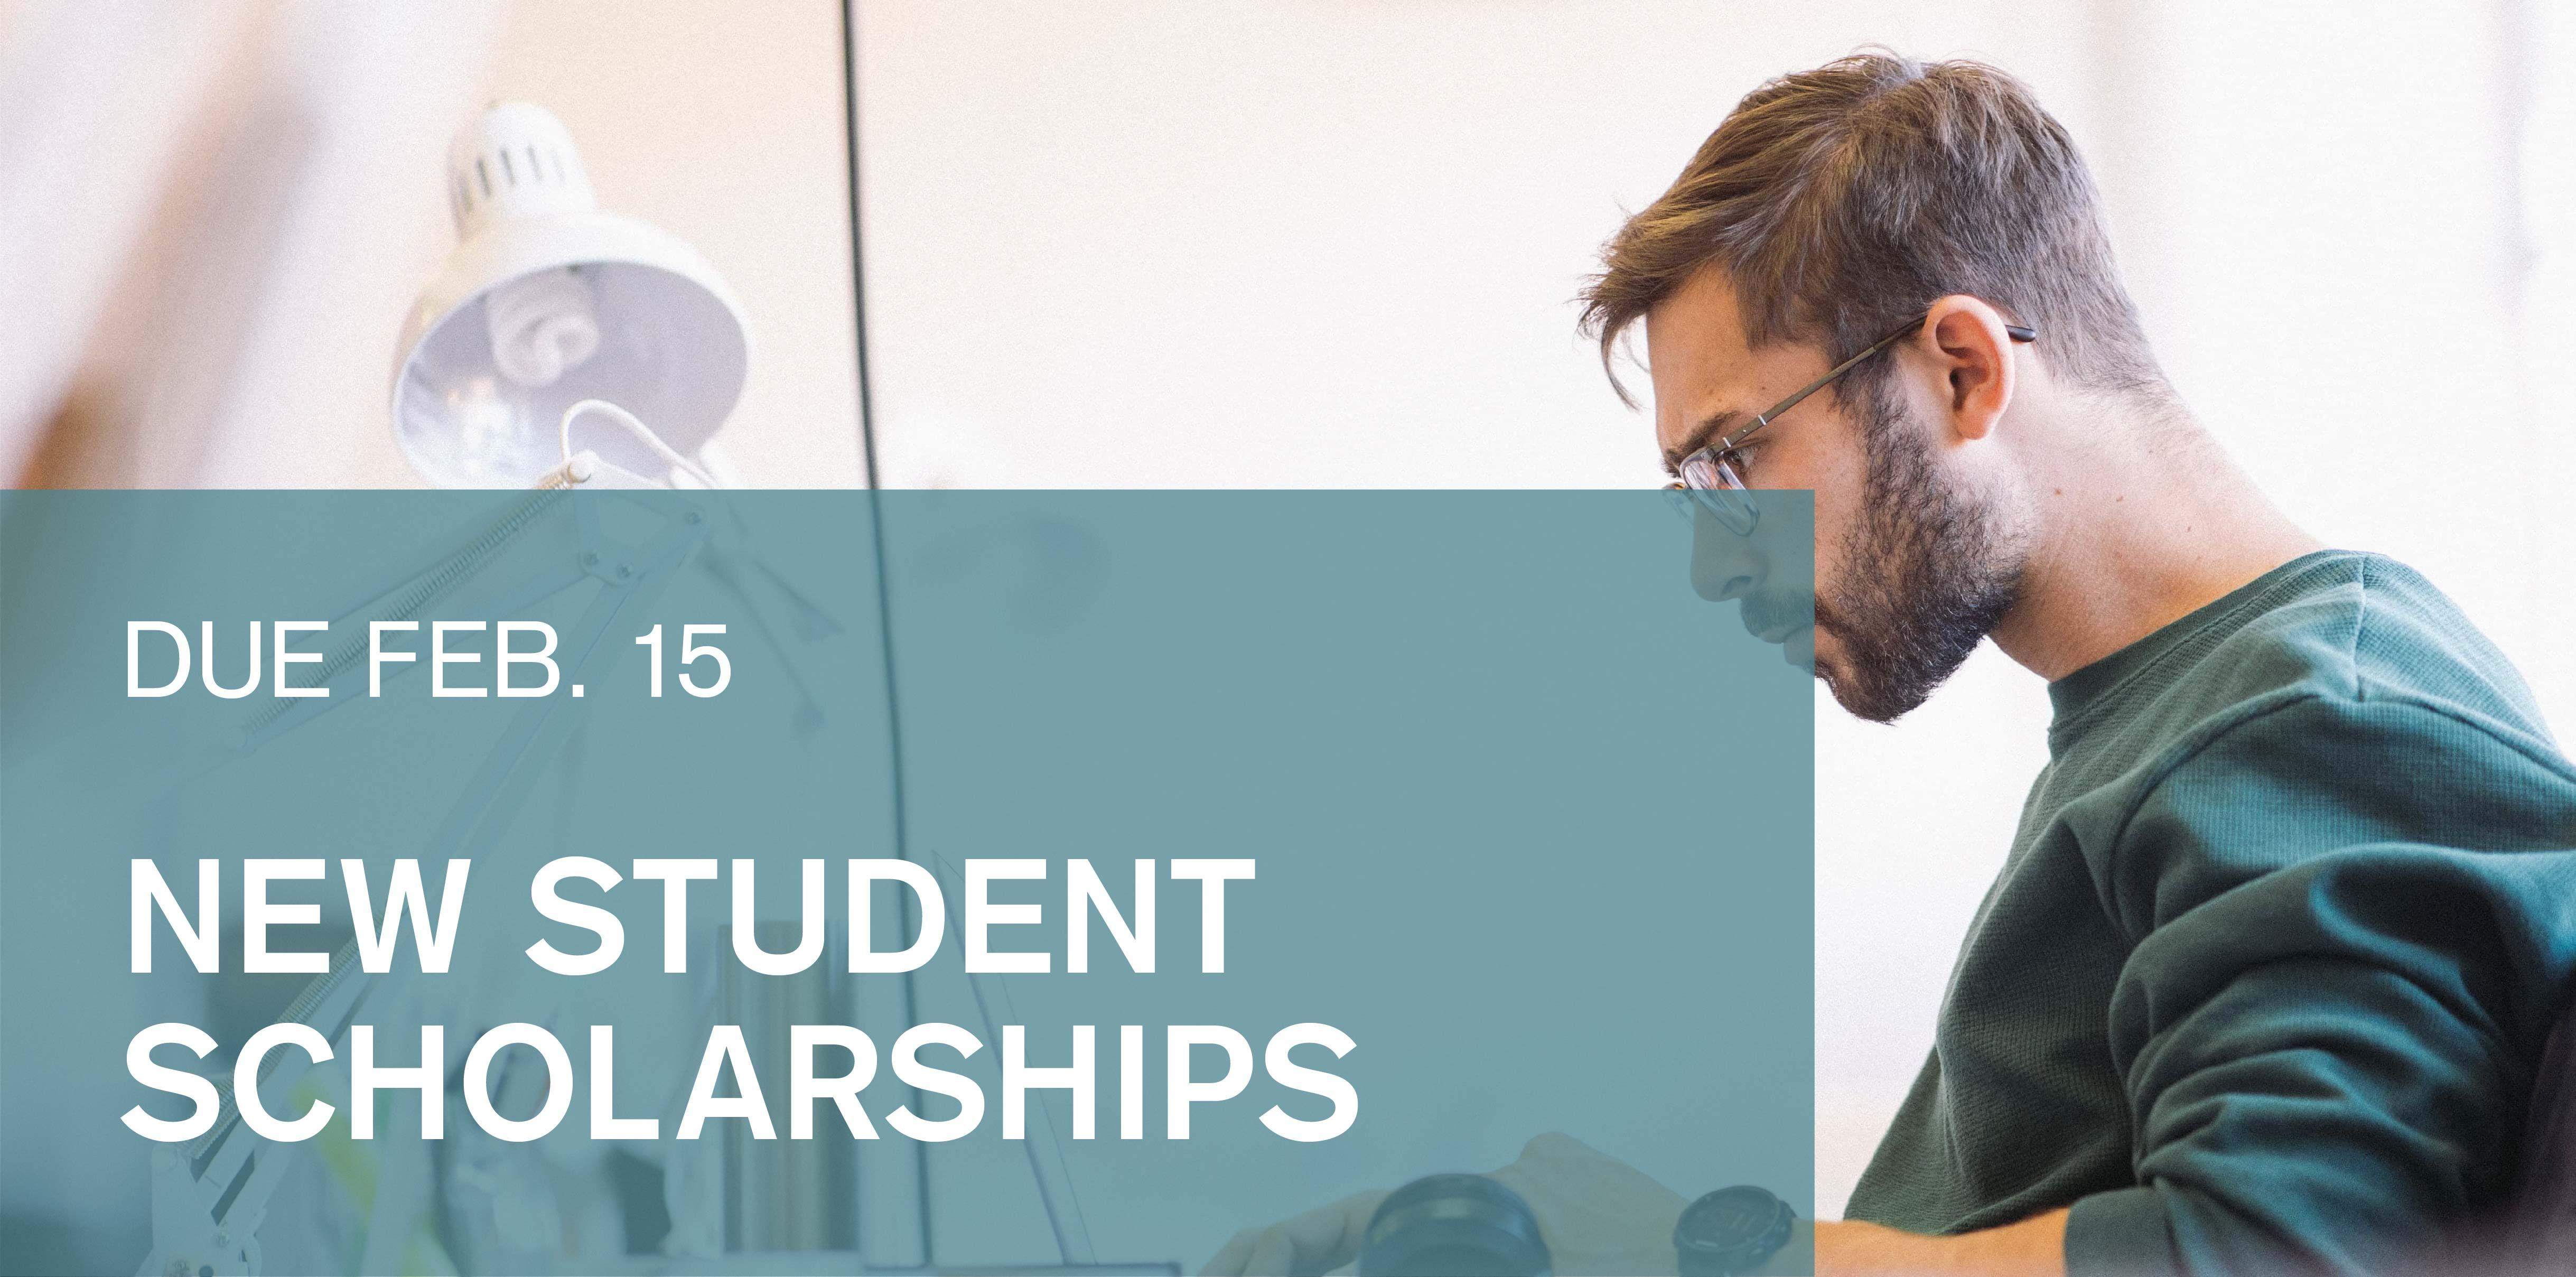 New Student Scholarships due February 15.